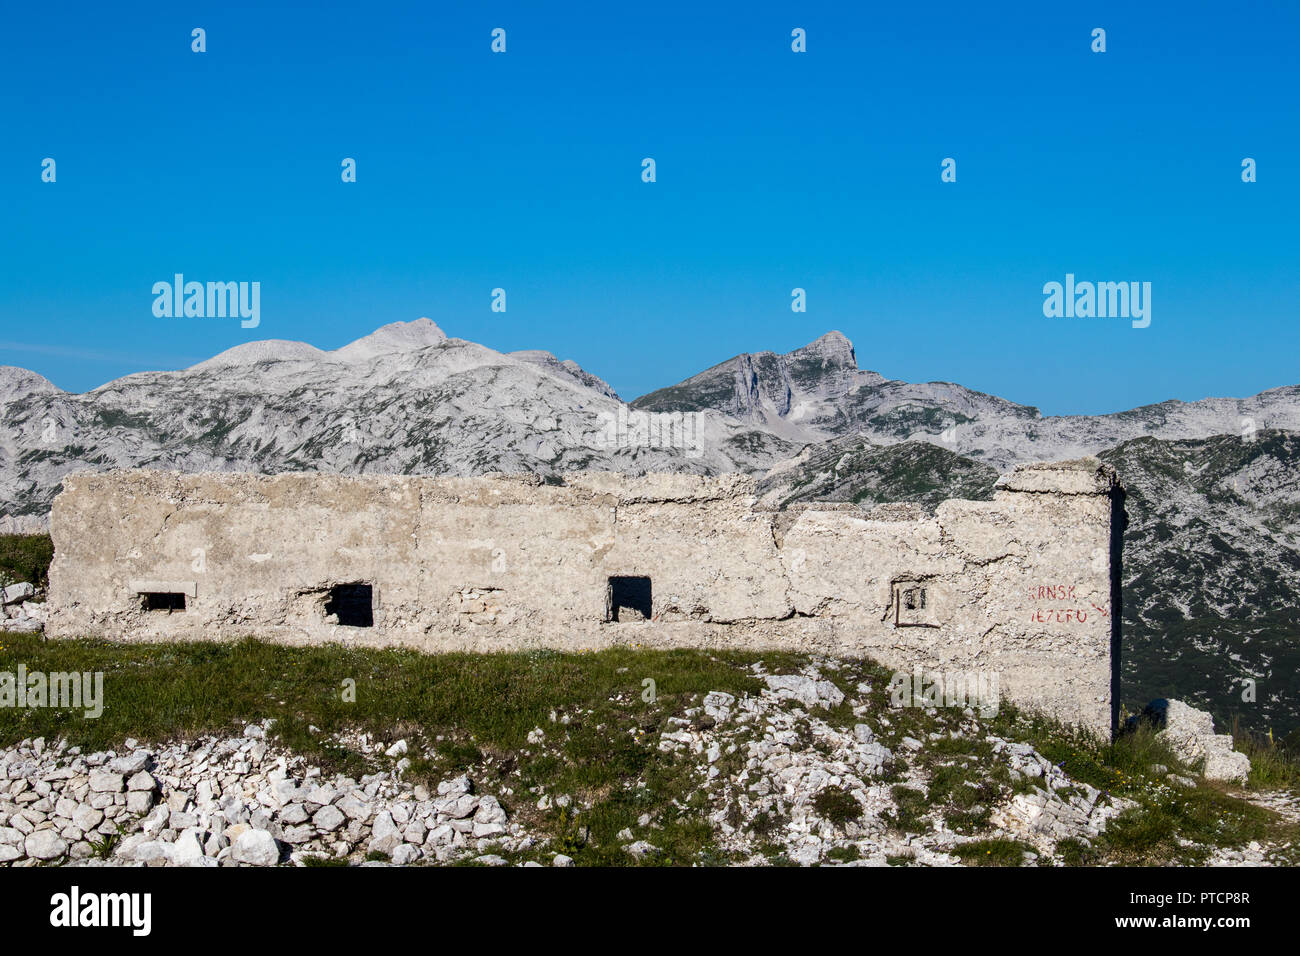 look over barrack from 1 world war to mountains - Stock Image